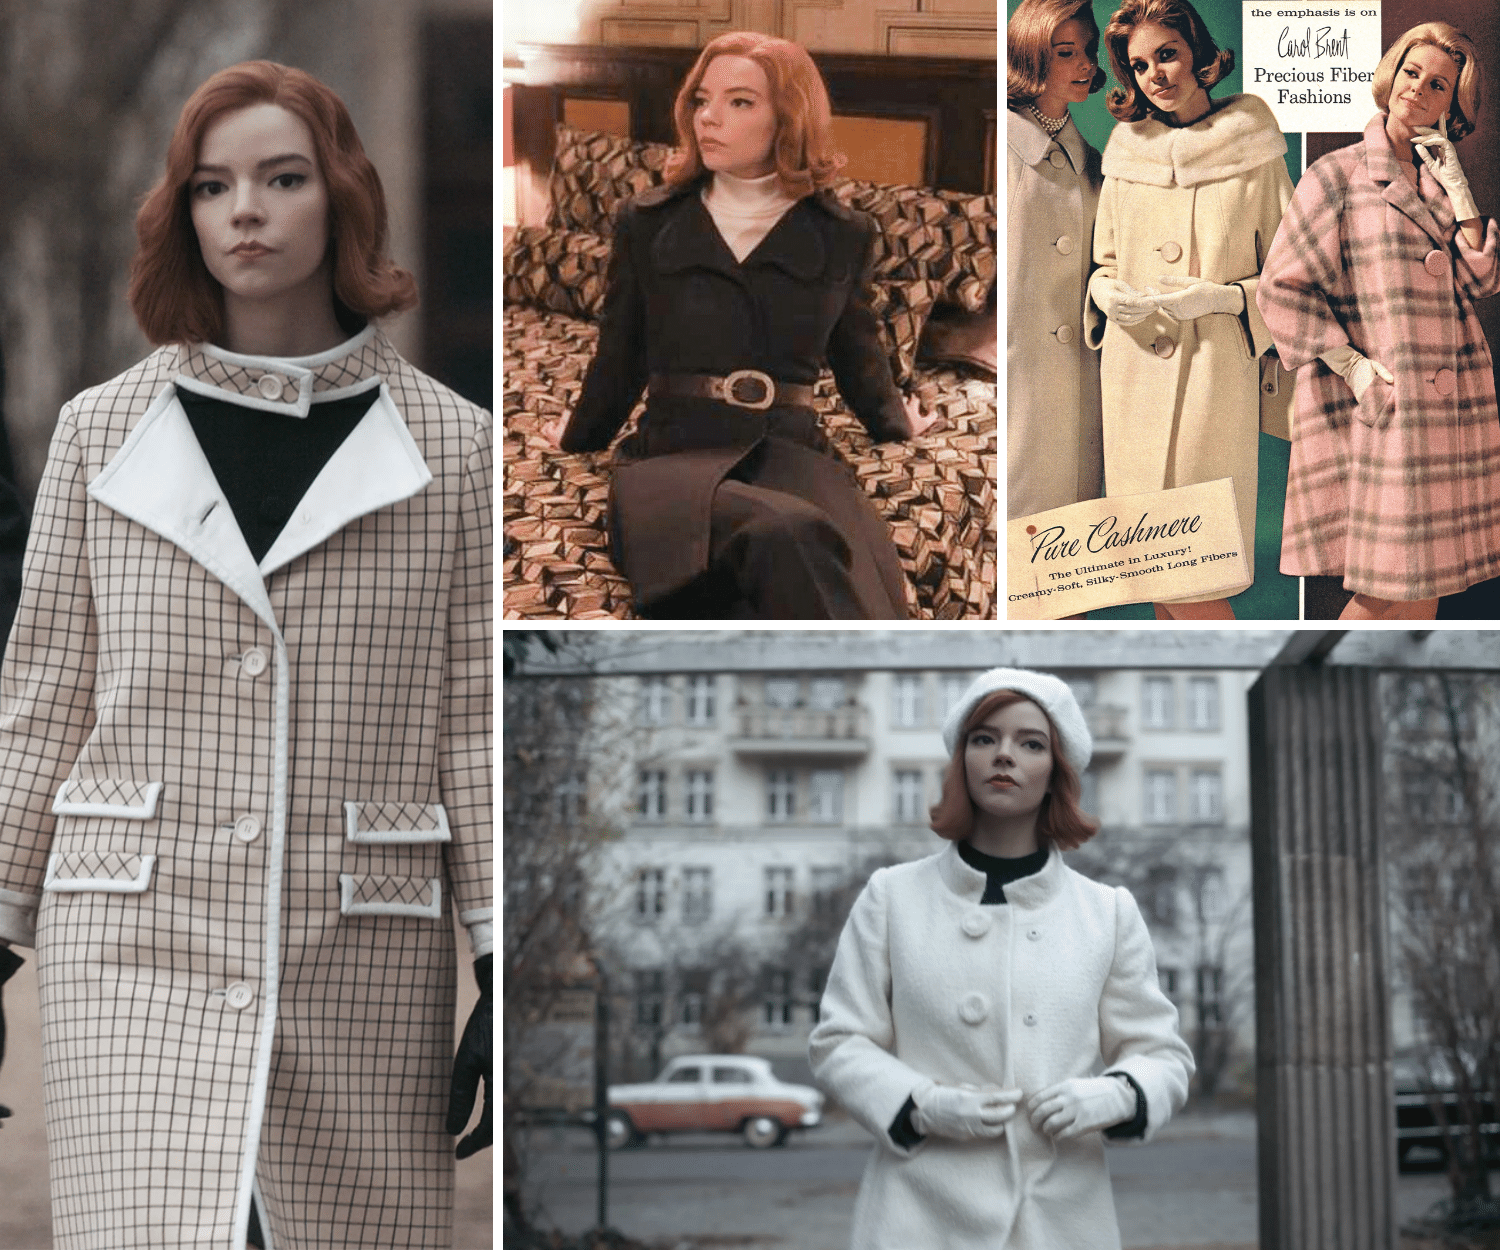 60's Coats and Jackets | Here's where to buy queens gambit clothes/outfits | Beth Harmon's Most Iconic Outfits | Queen's Gambit Style Guide: How to Wear Beth Harmon's '60s Fashion Outfits in 2021 | Muse Boutique Outlet